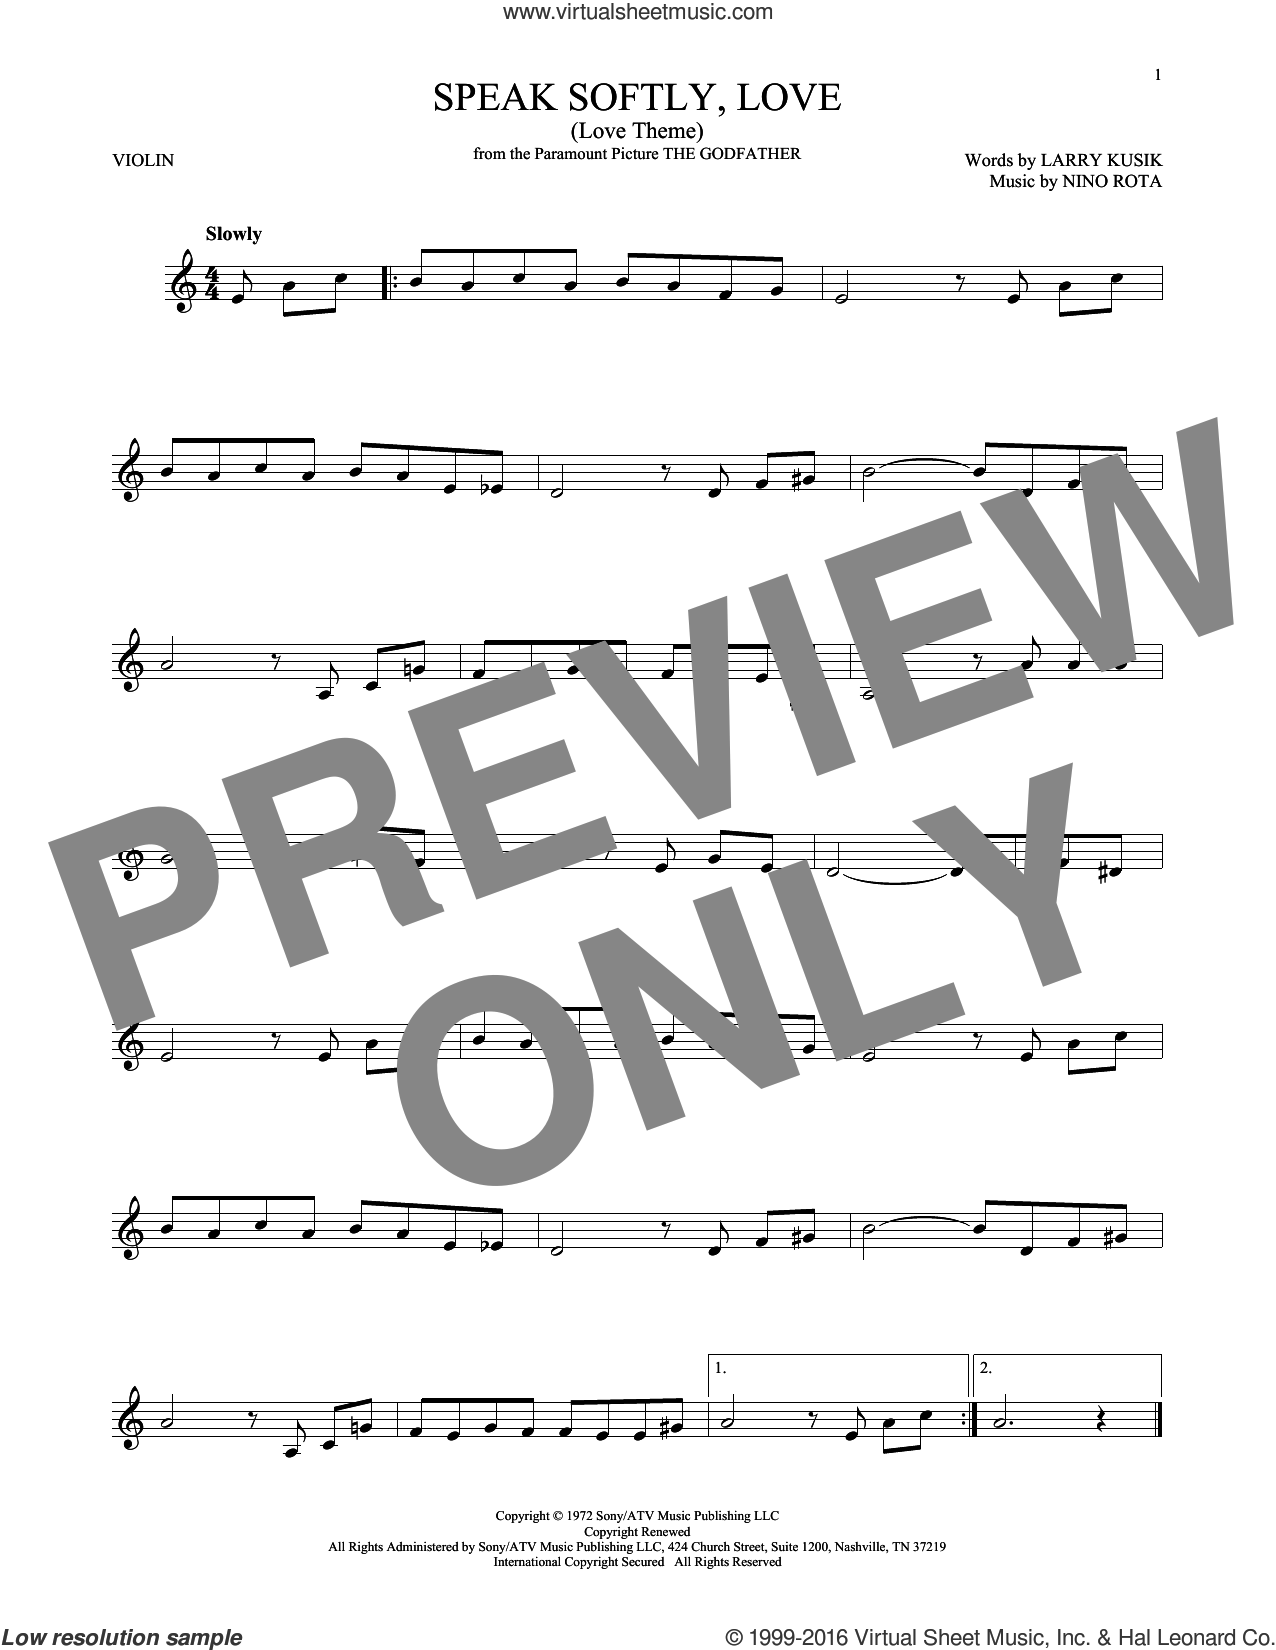 Speak Softly, Love (Love Theme) sheet music for violin solo by Andy Williams, Larry Kusik and Nino Rota, intermediate